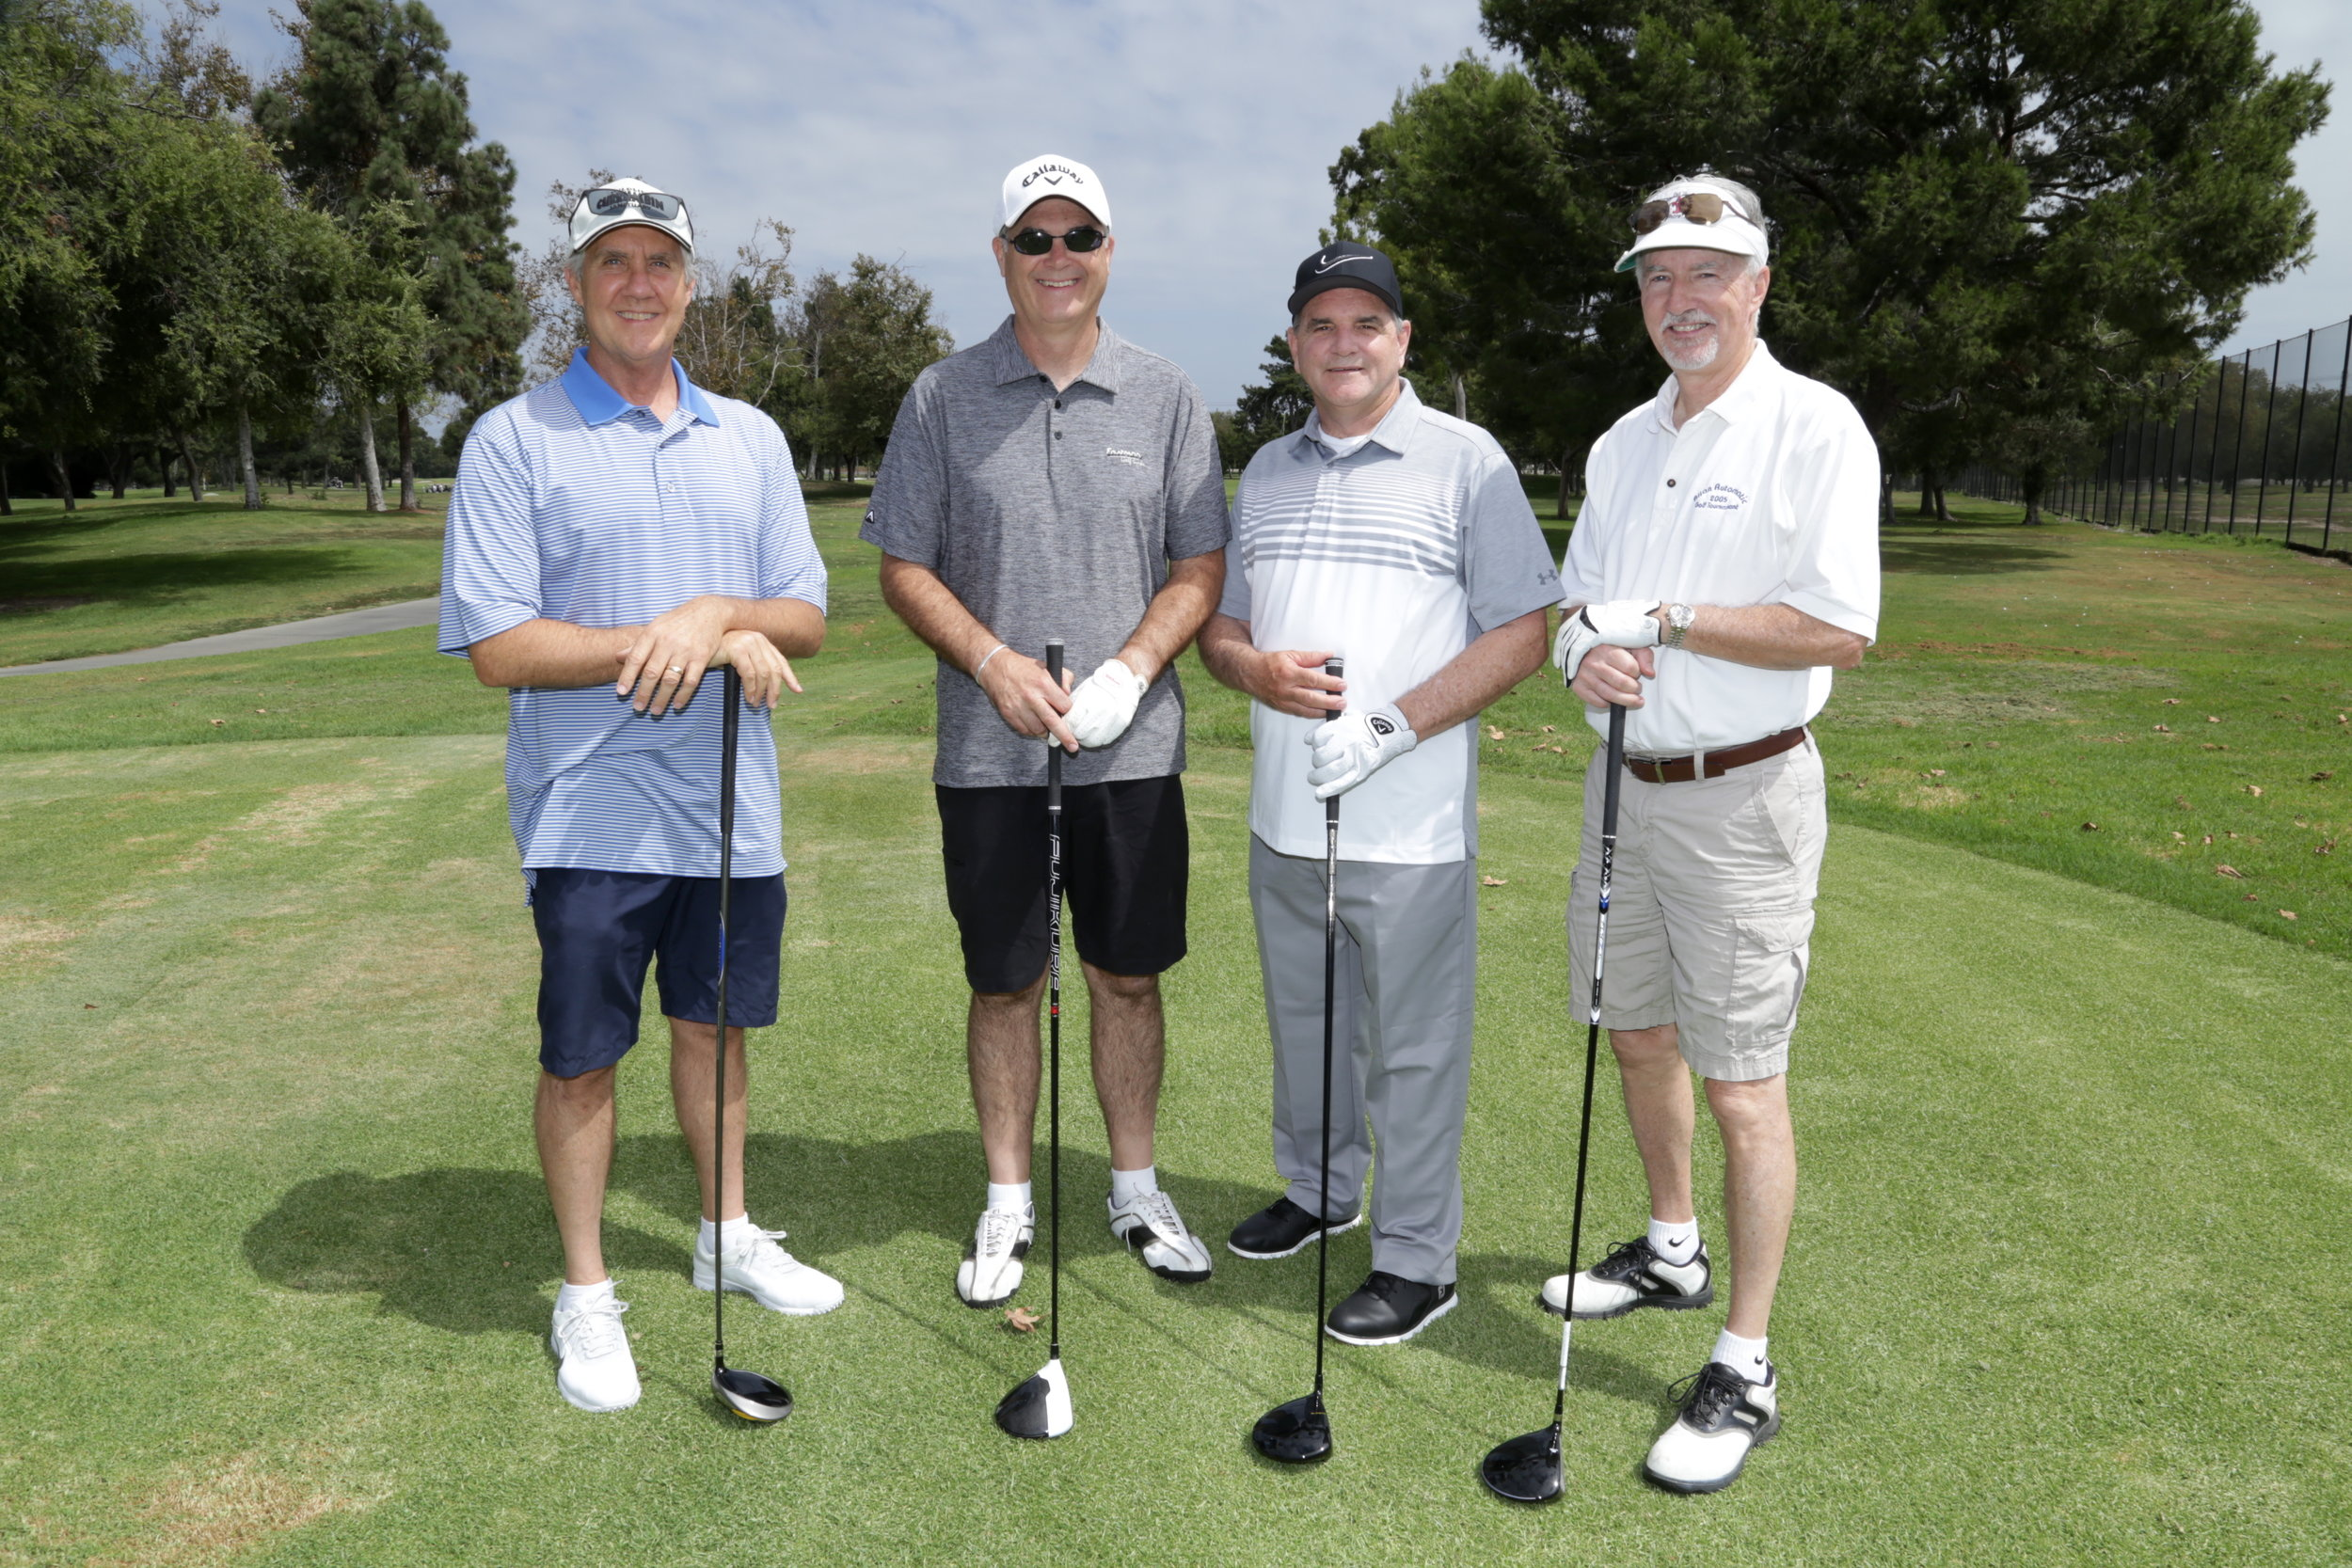 2017 Tee Off For The Heart Foursomes by Mike Palmer - Click here to view more